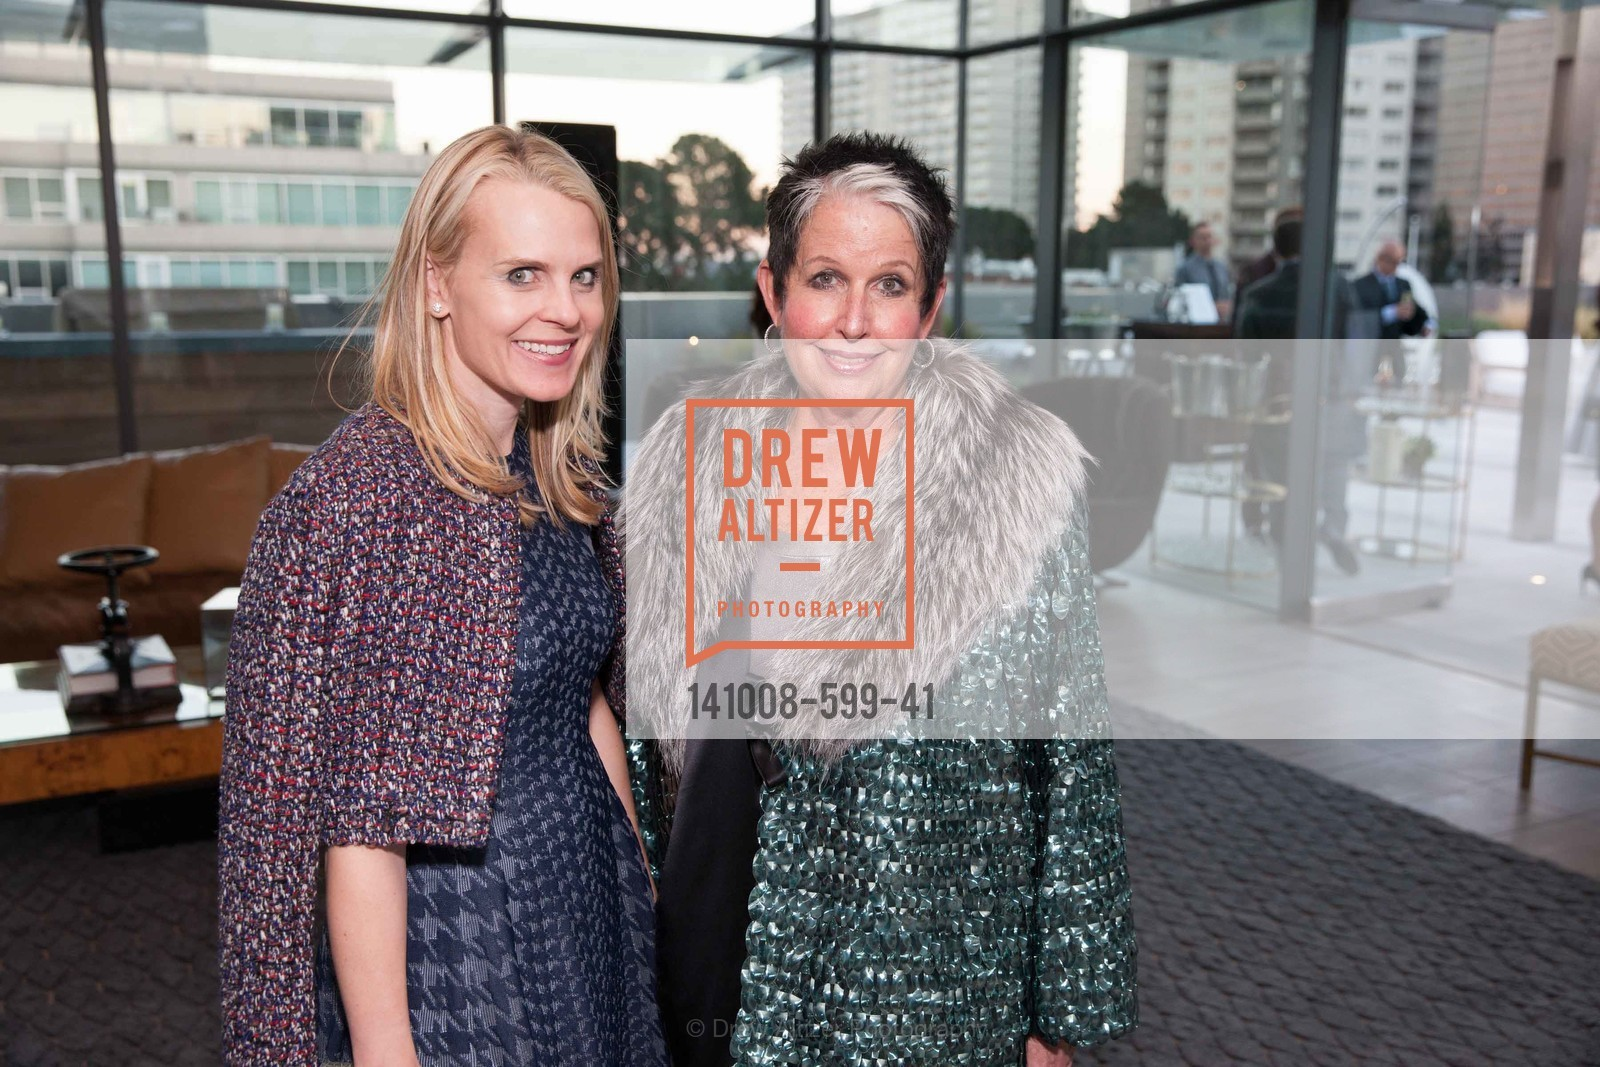 Jane Mudge, Karen Kubin, 7x7 HOT 20, US, October 9th, 2014,Drew Altizer, Drew Altizer Photography, full-service agency, private events, San Francisco photographer, photographer california